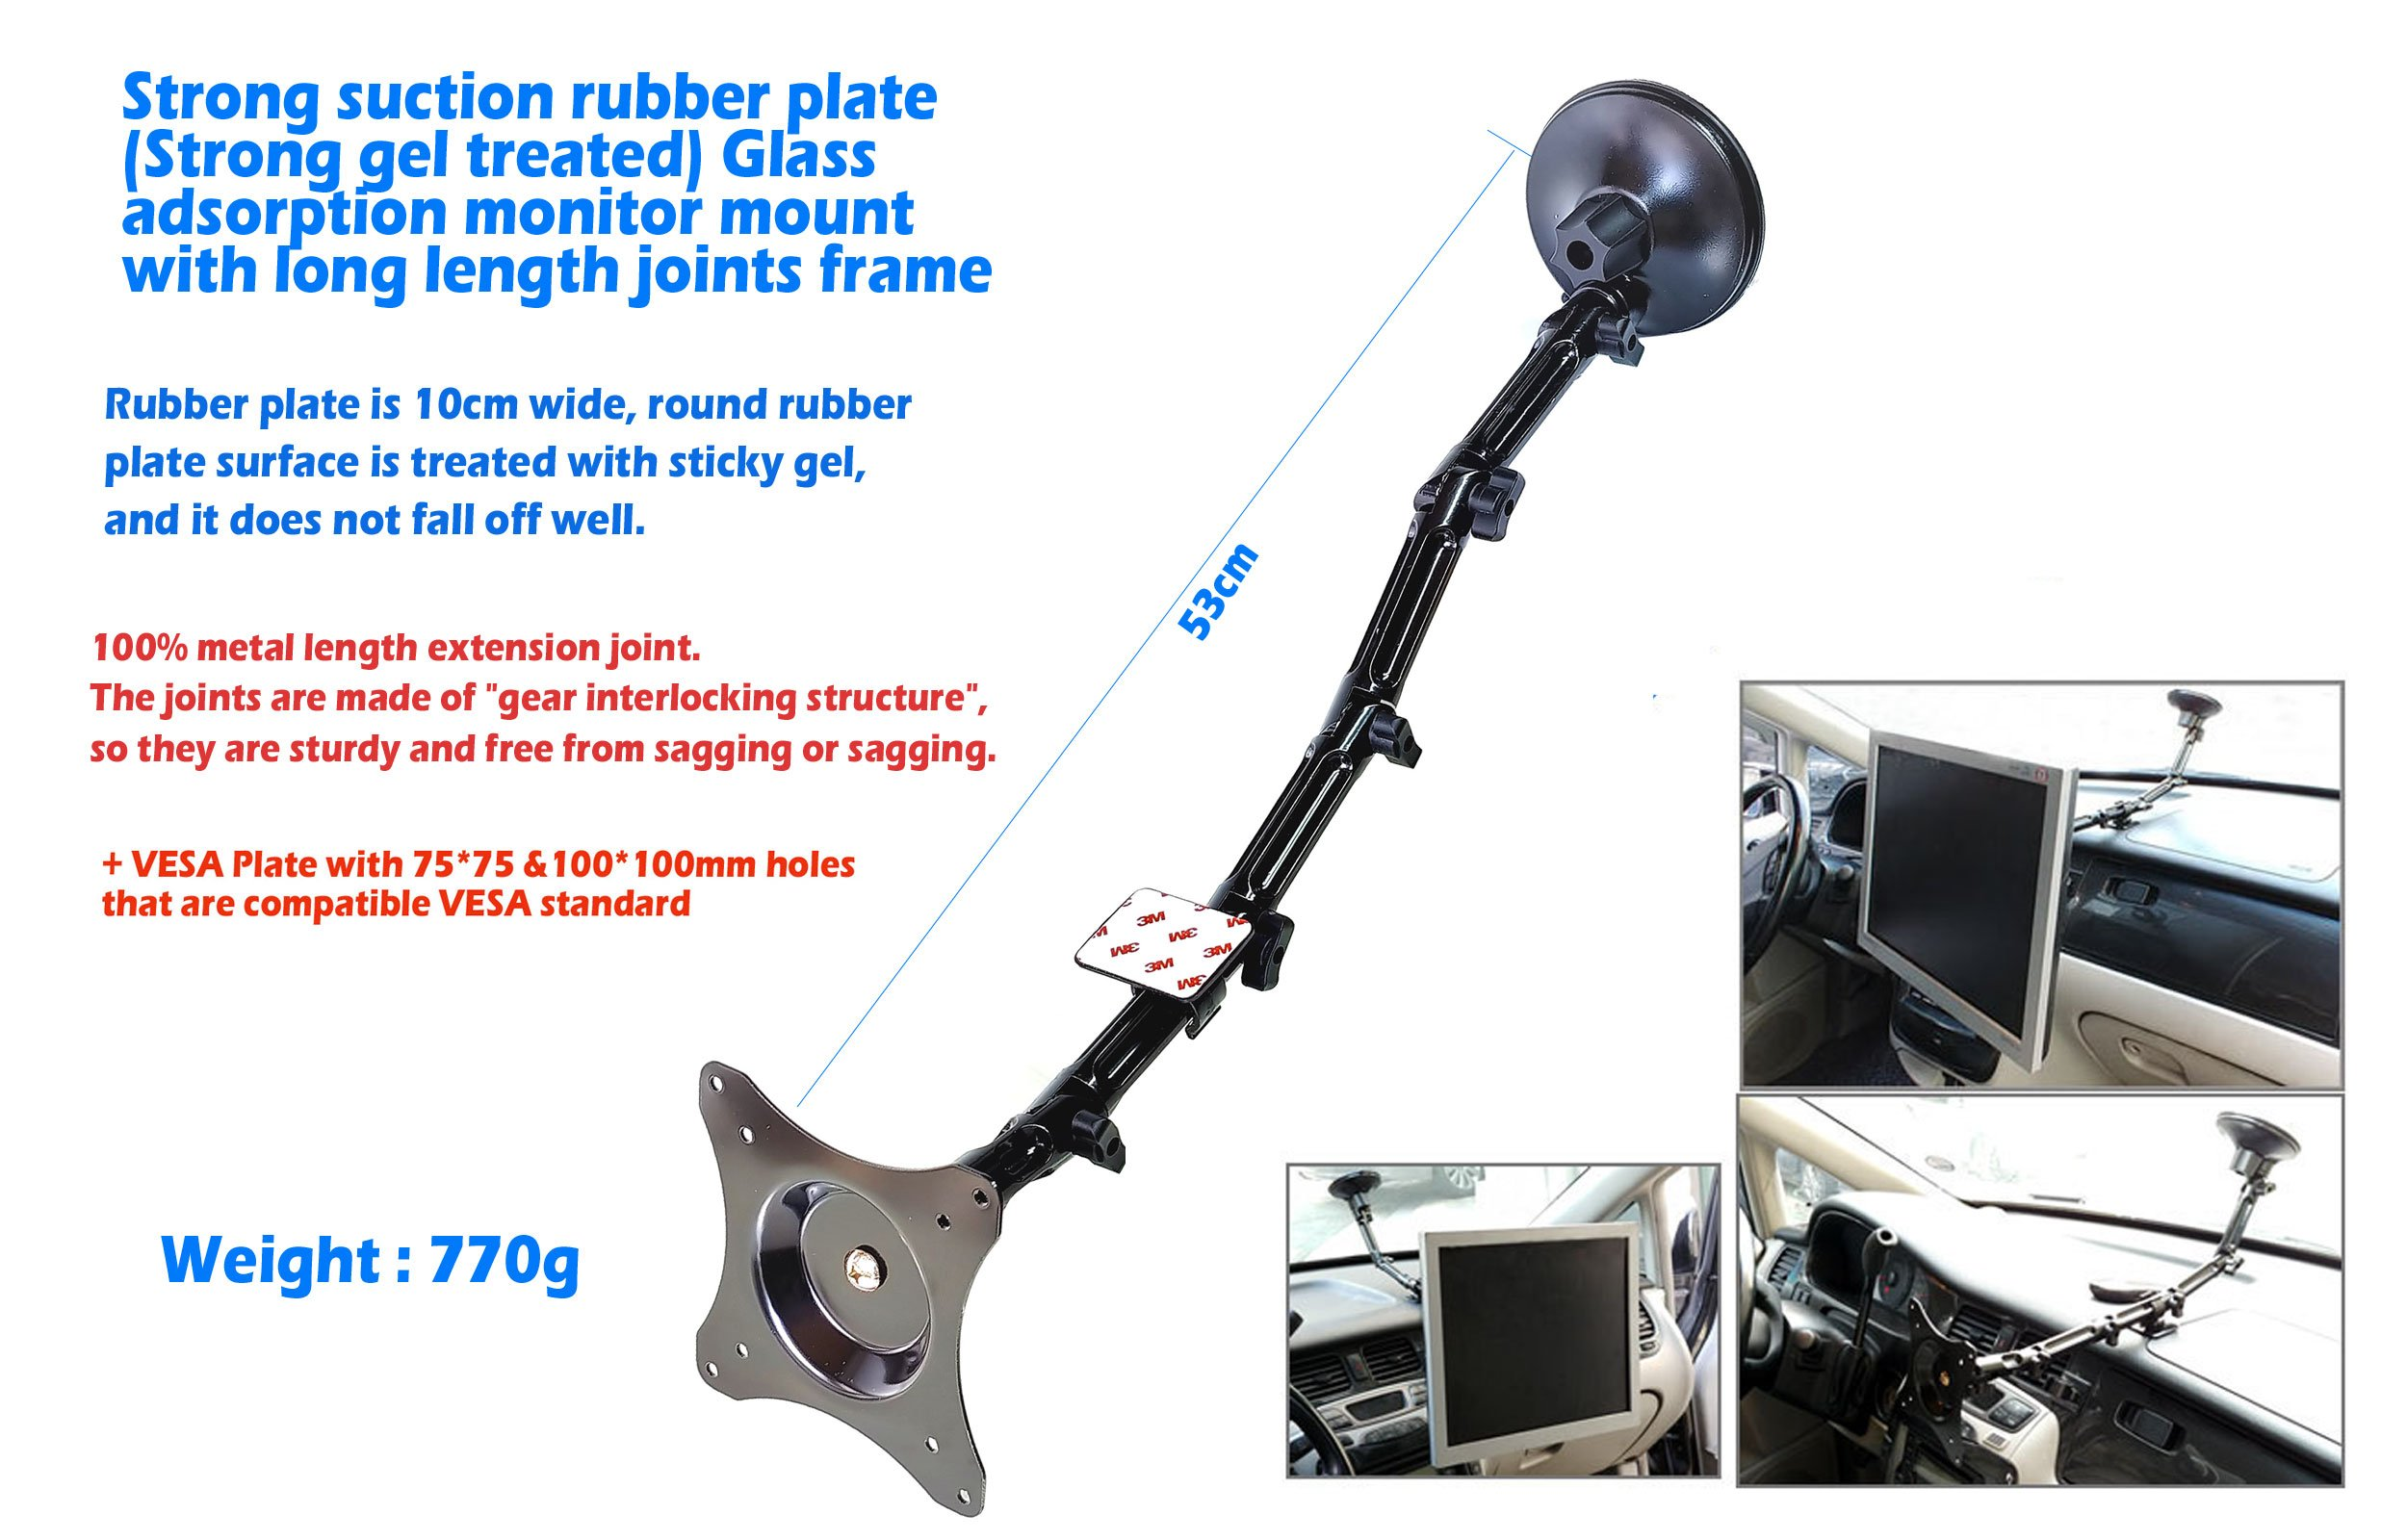 Powerful glass-absorbing monitor mount with a diameter of 100mm Rubber plate that is treated rounded circle border with sticky GEL+gear engaging LONG joint support part+75mm and 100mm VESA internation